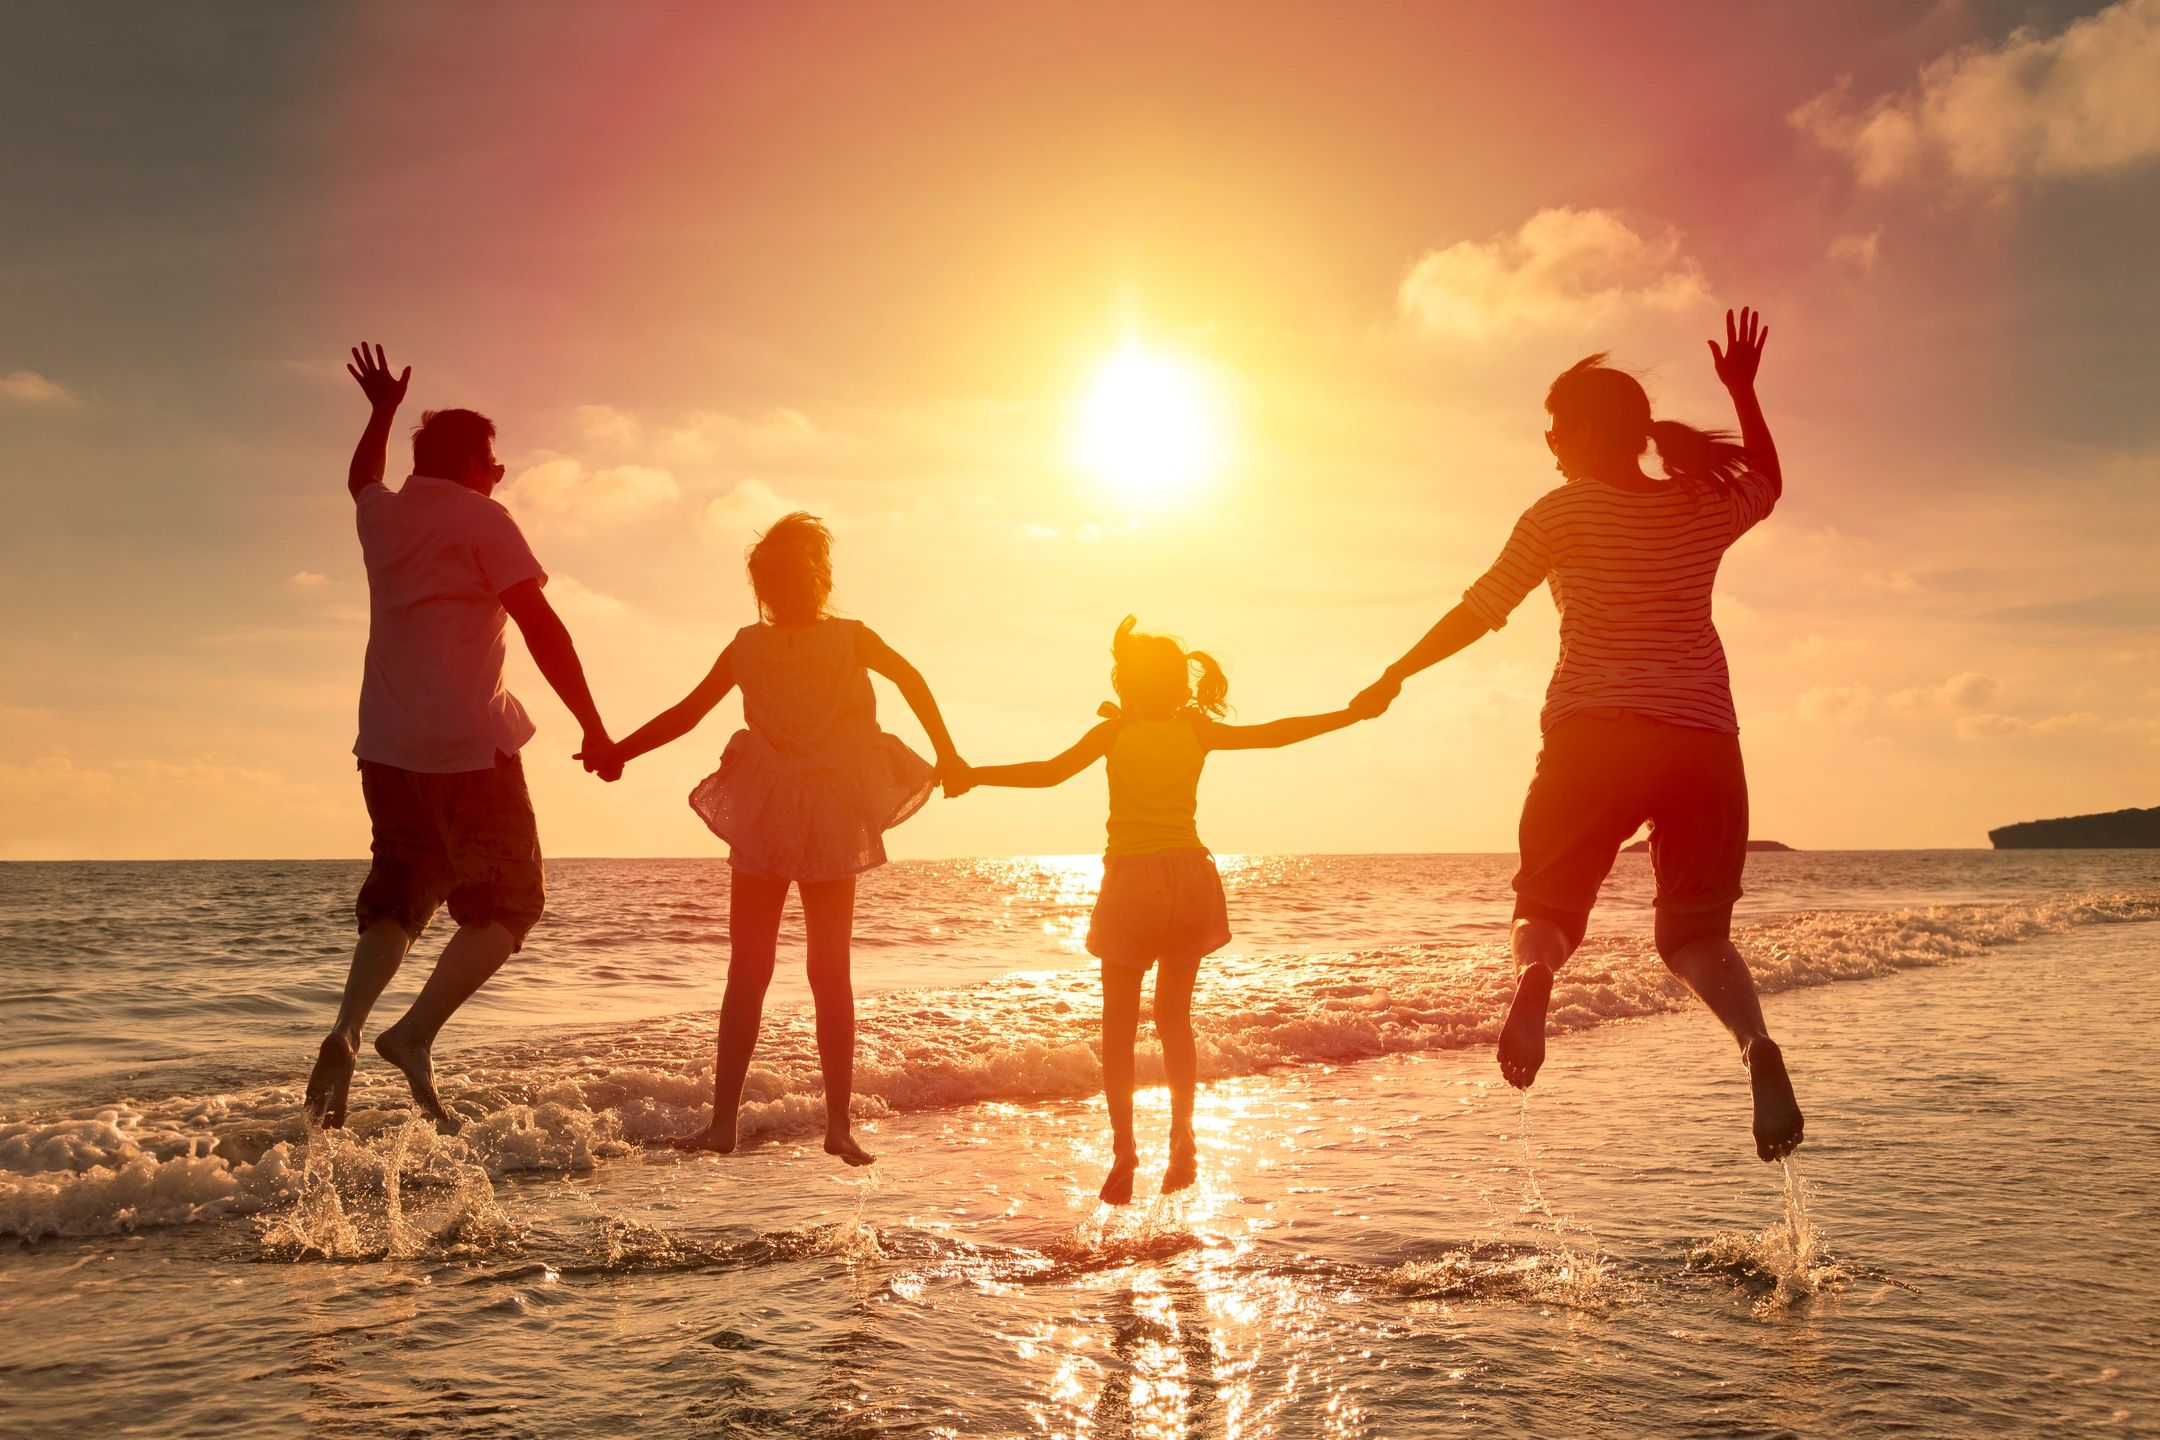 Life Insurance – The Ultimate Financial Protection for Your Family